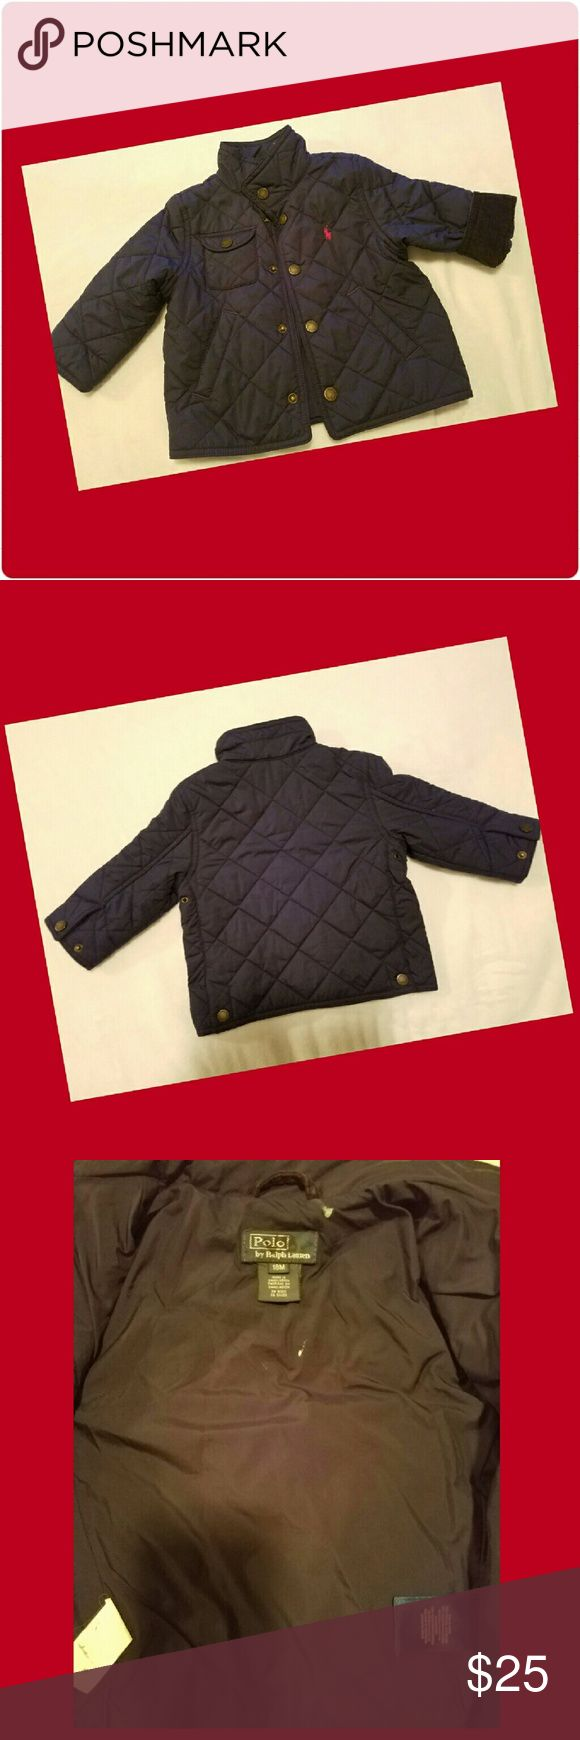 Adorable Polo Jacket Navy jacket, with corduroy accent roll up sleeve. 2 small spots on the inside... as pictured in 3rd photo. Polo by Ralph Lauren Jackets & Coats Puffers